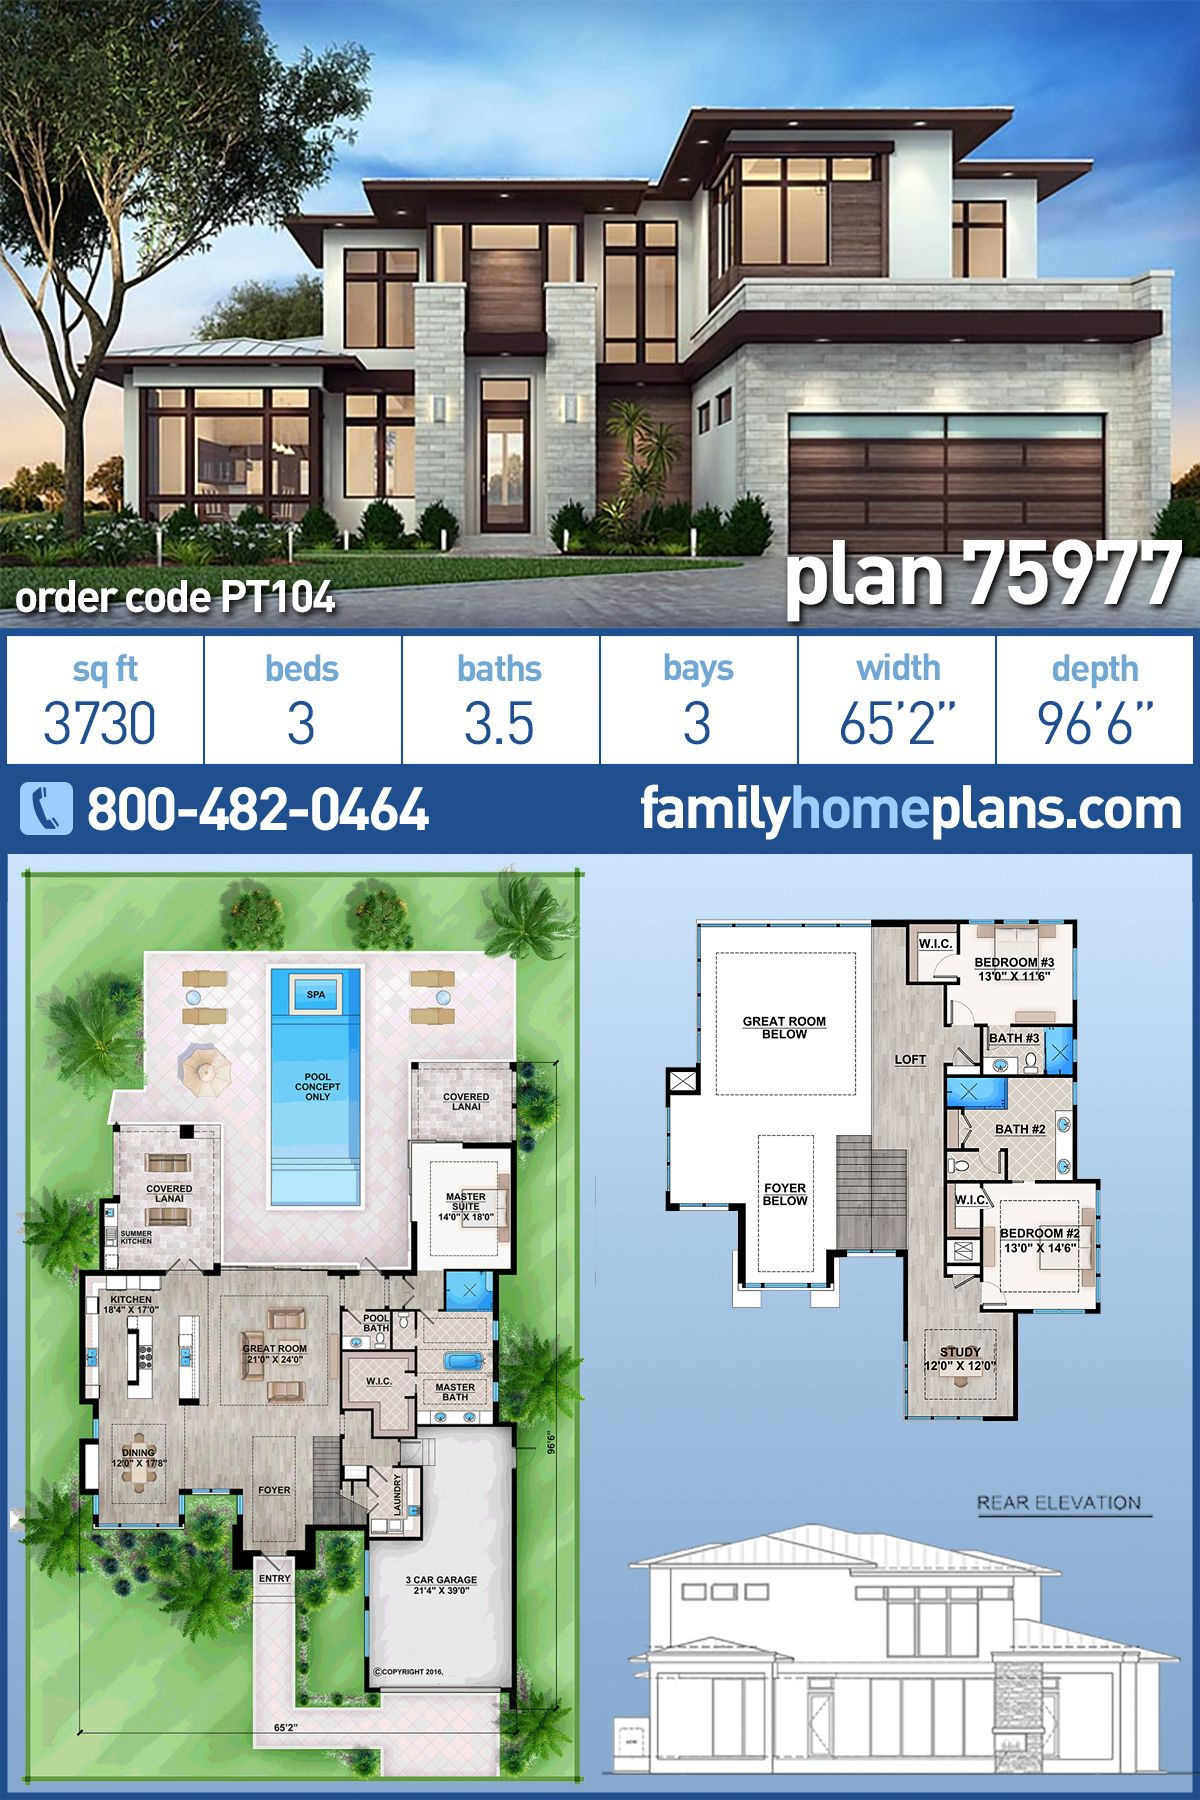 Modern Style House Plan 75977 With 3 Bed 4 Bath 3 Car Garage Modern House Floor Plans Modern Style House Plans Contemporary House Plans